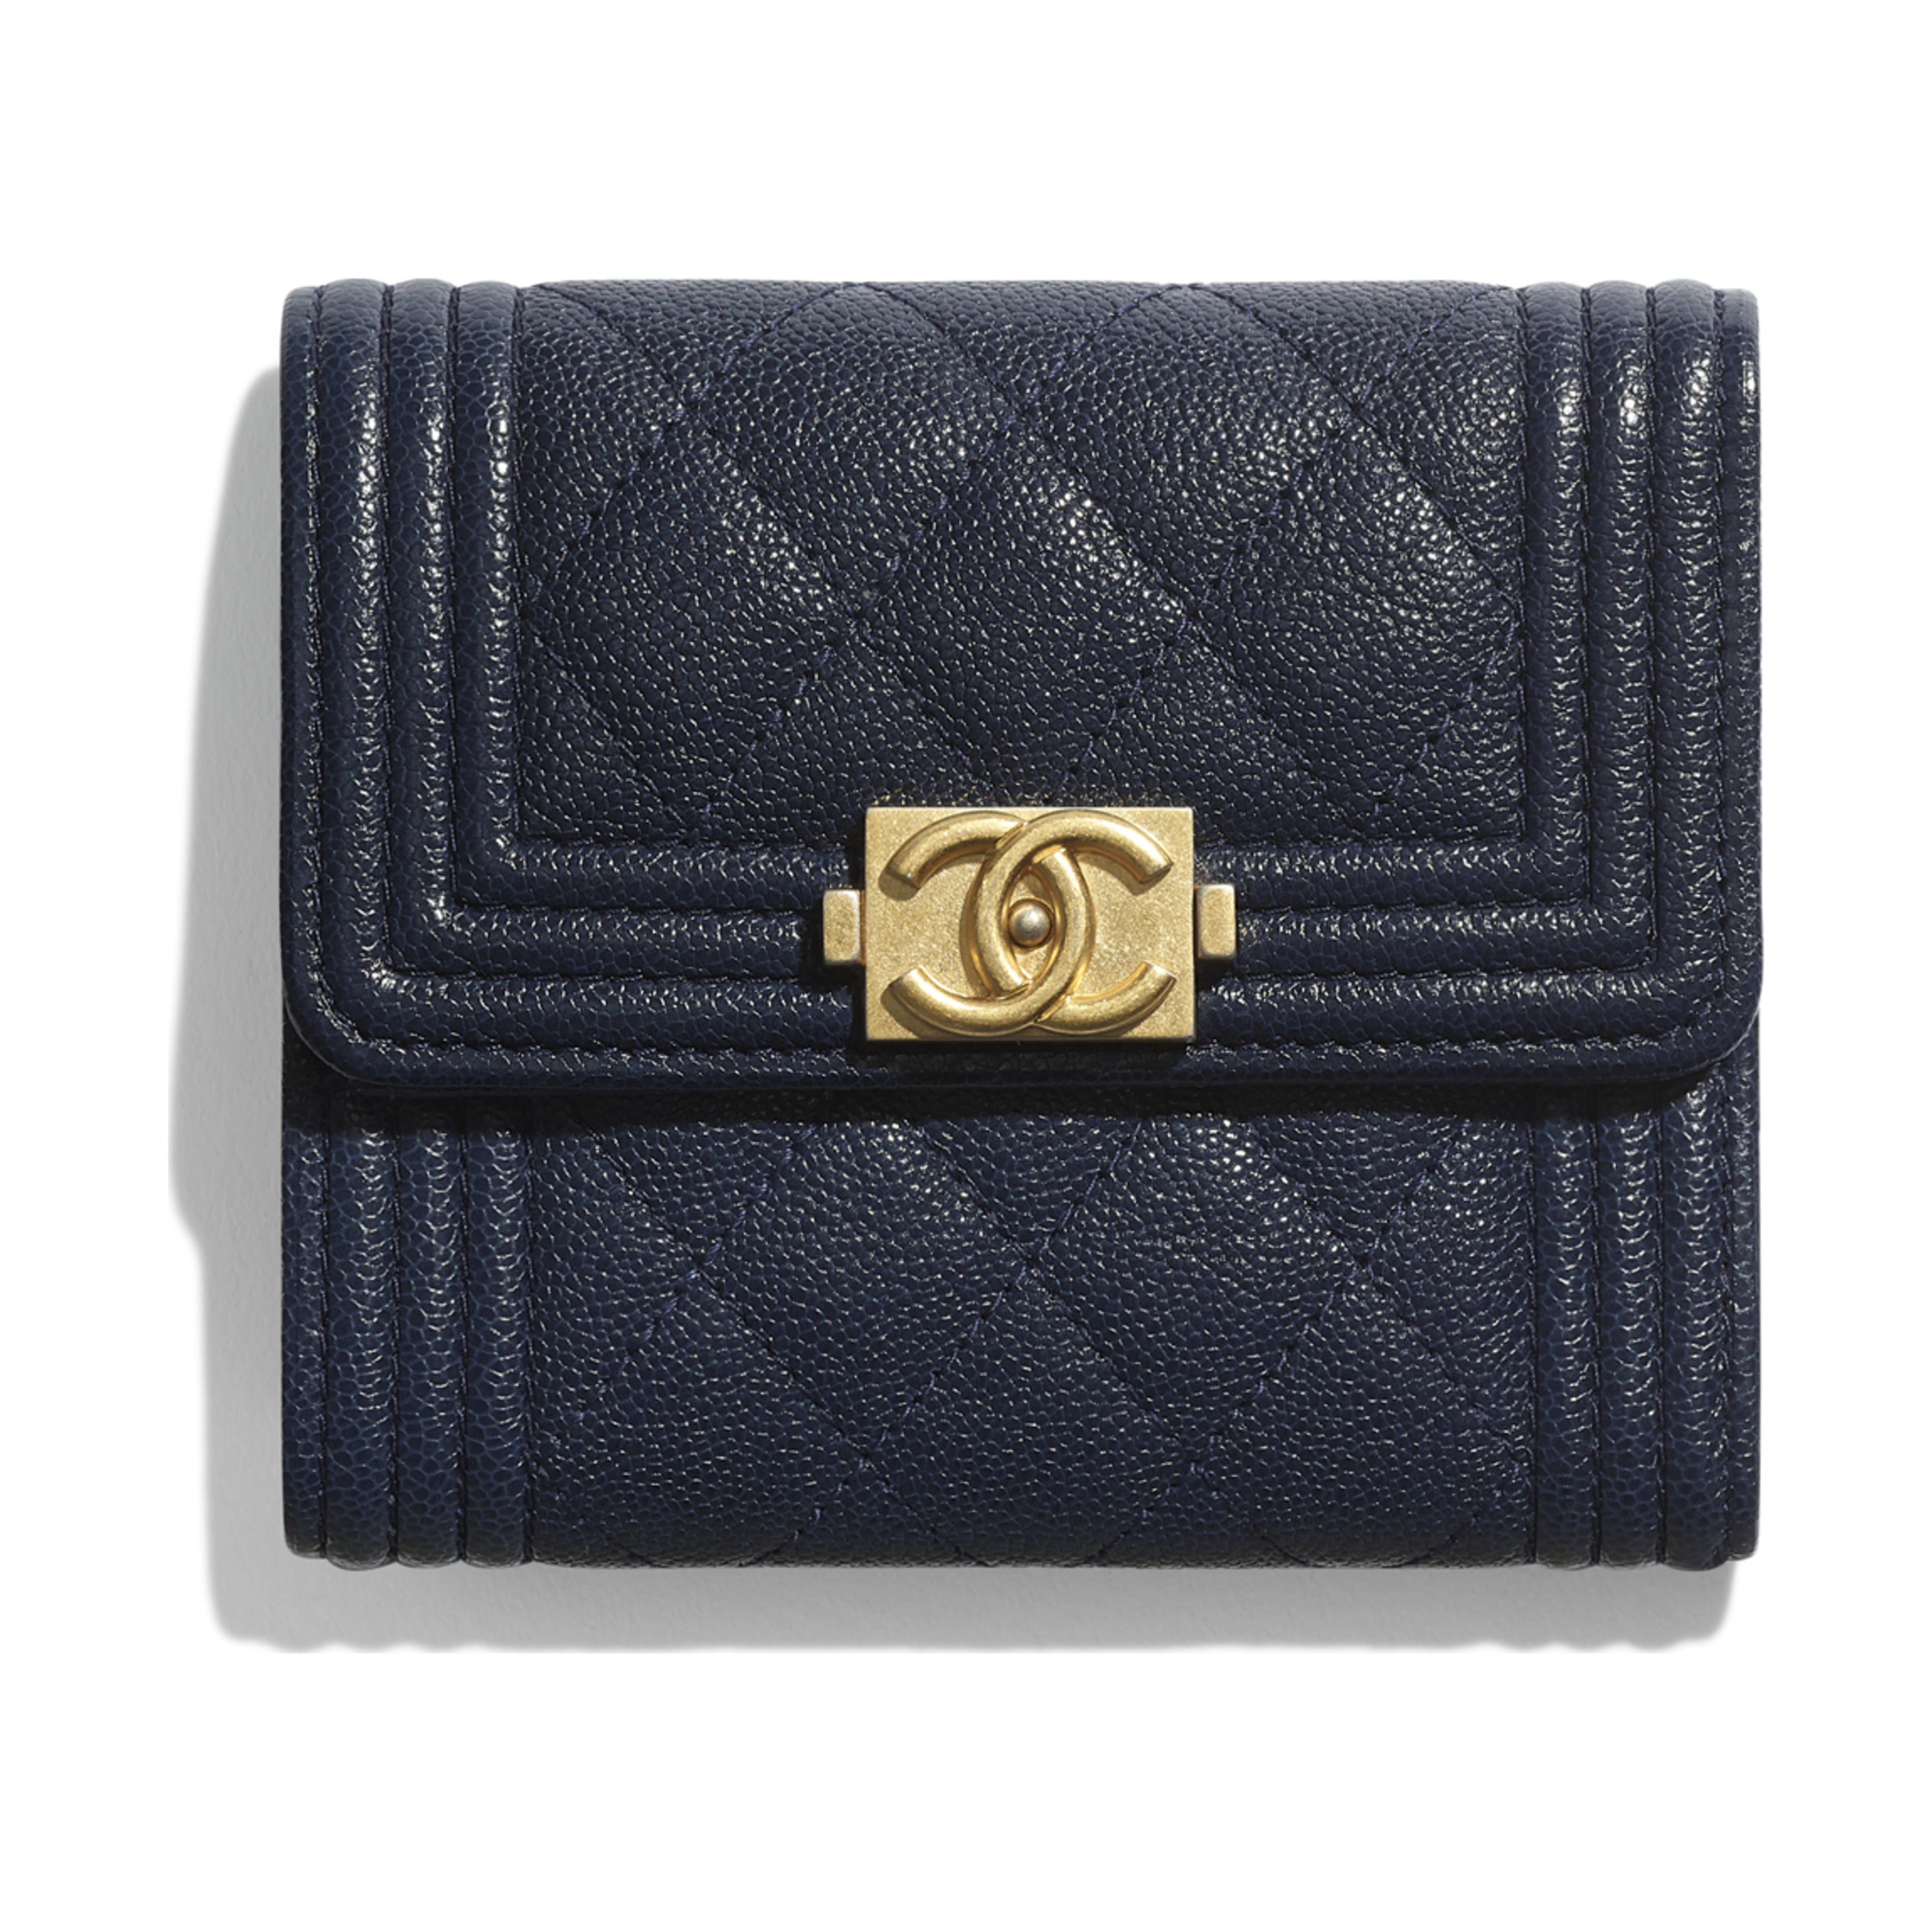 cc554ad87bdf Grained Calfskin & Gold-Tone Metal Navy Blue BOY CHANEL Small Flap Wallet |  CHANEL